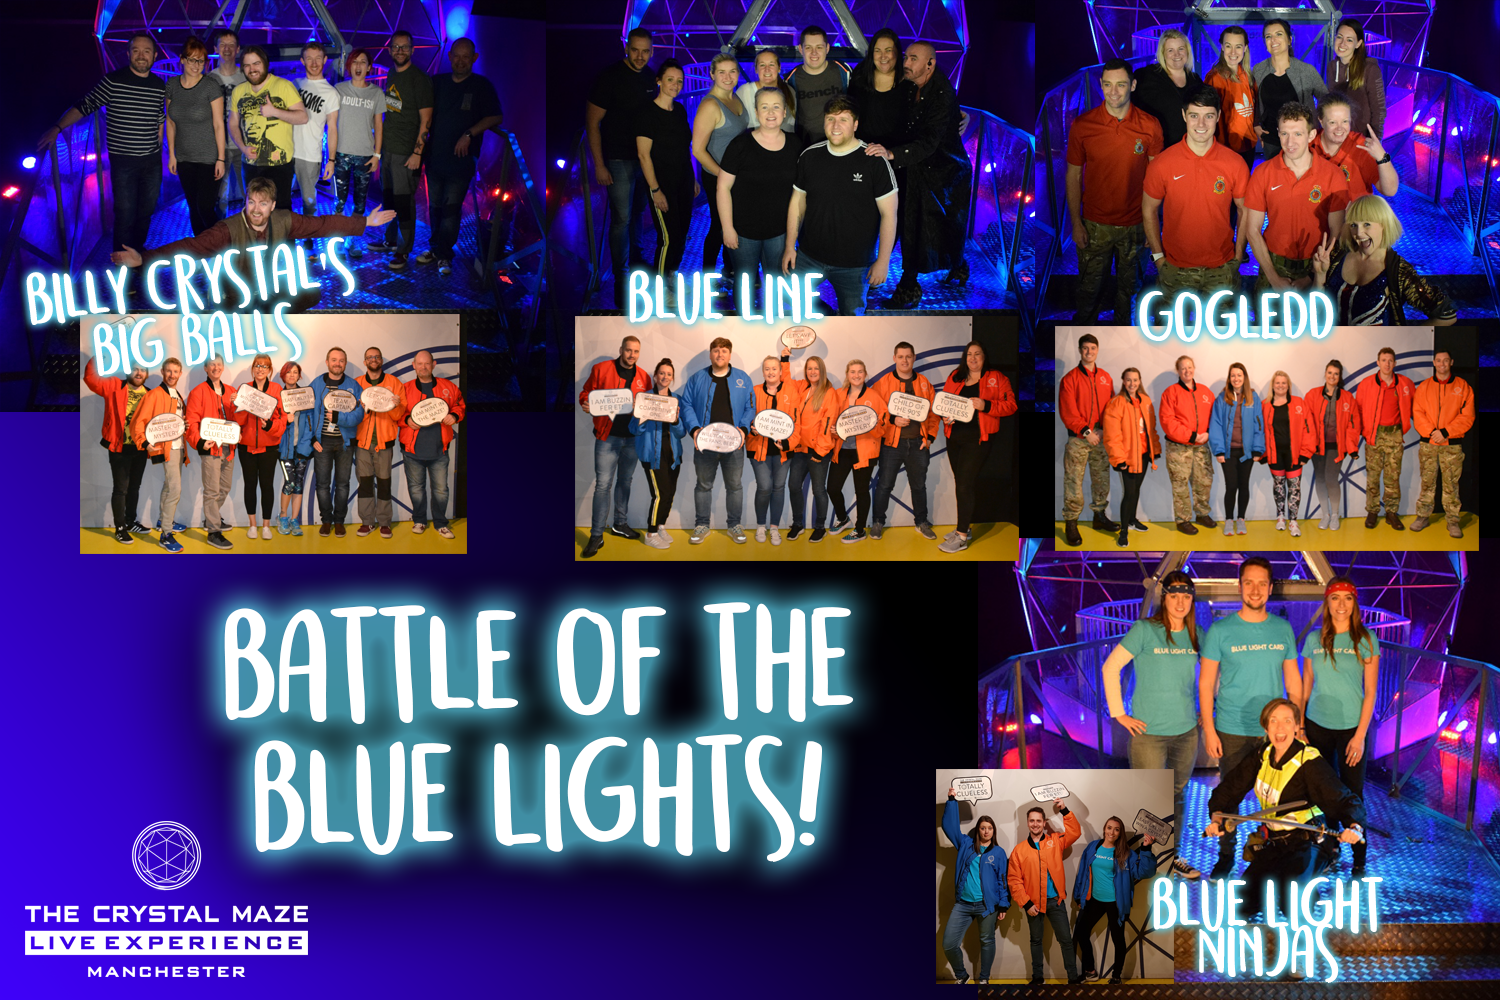 The Crystal Maze LIVE Experience Manchester - Battle of the Blue Lights!